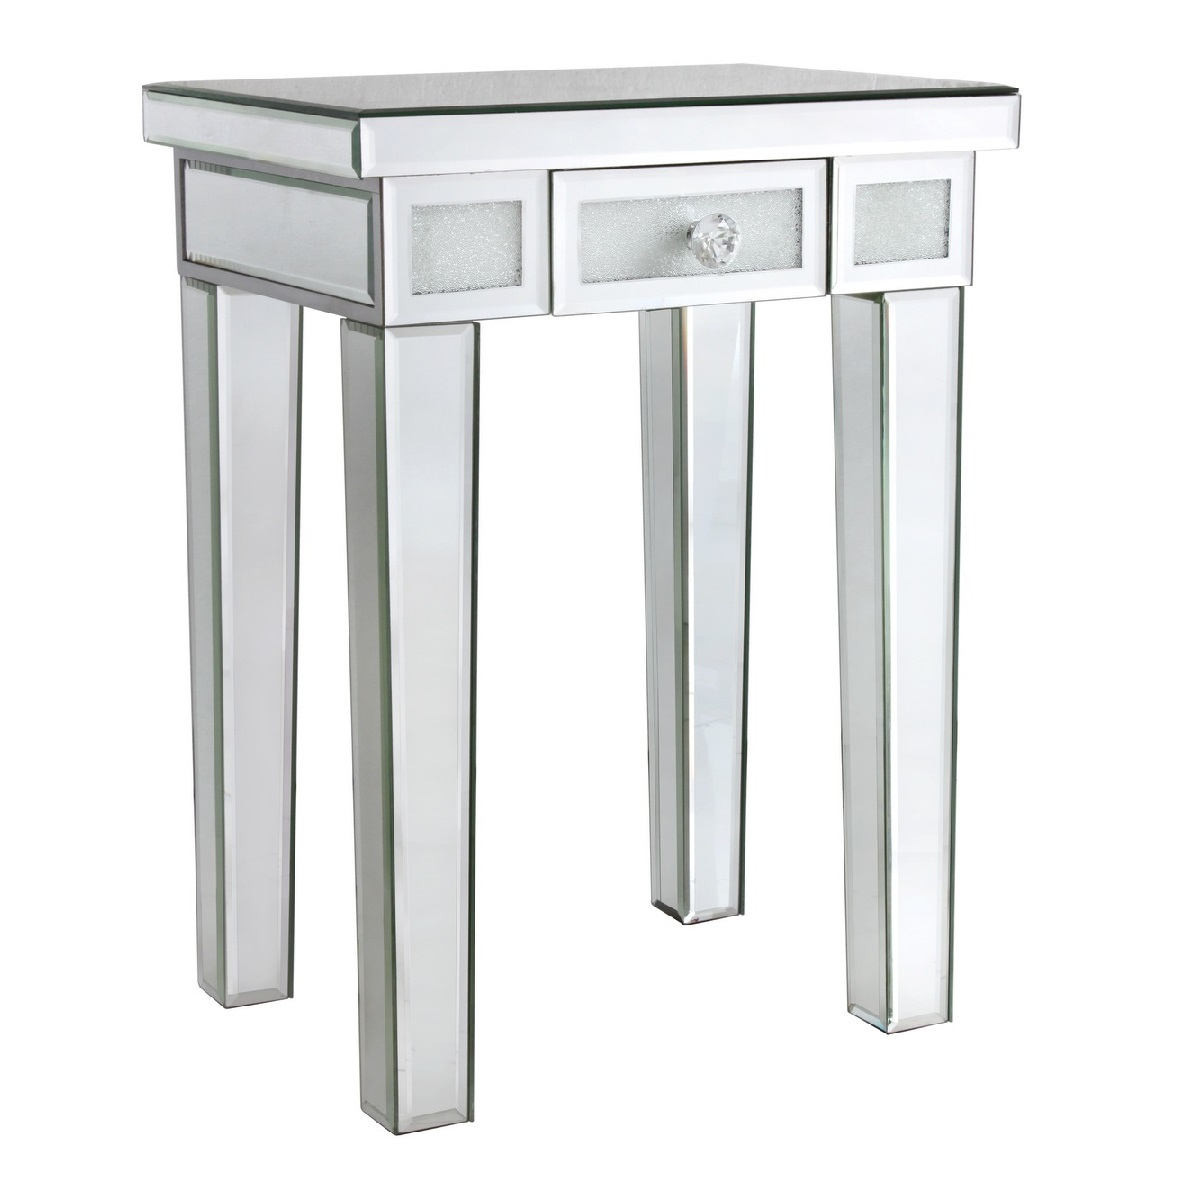 mirrored side table. Pedestal Table Mirrored Side T